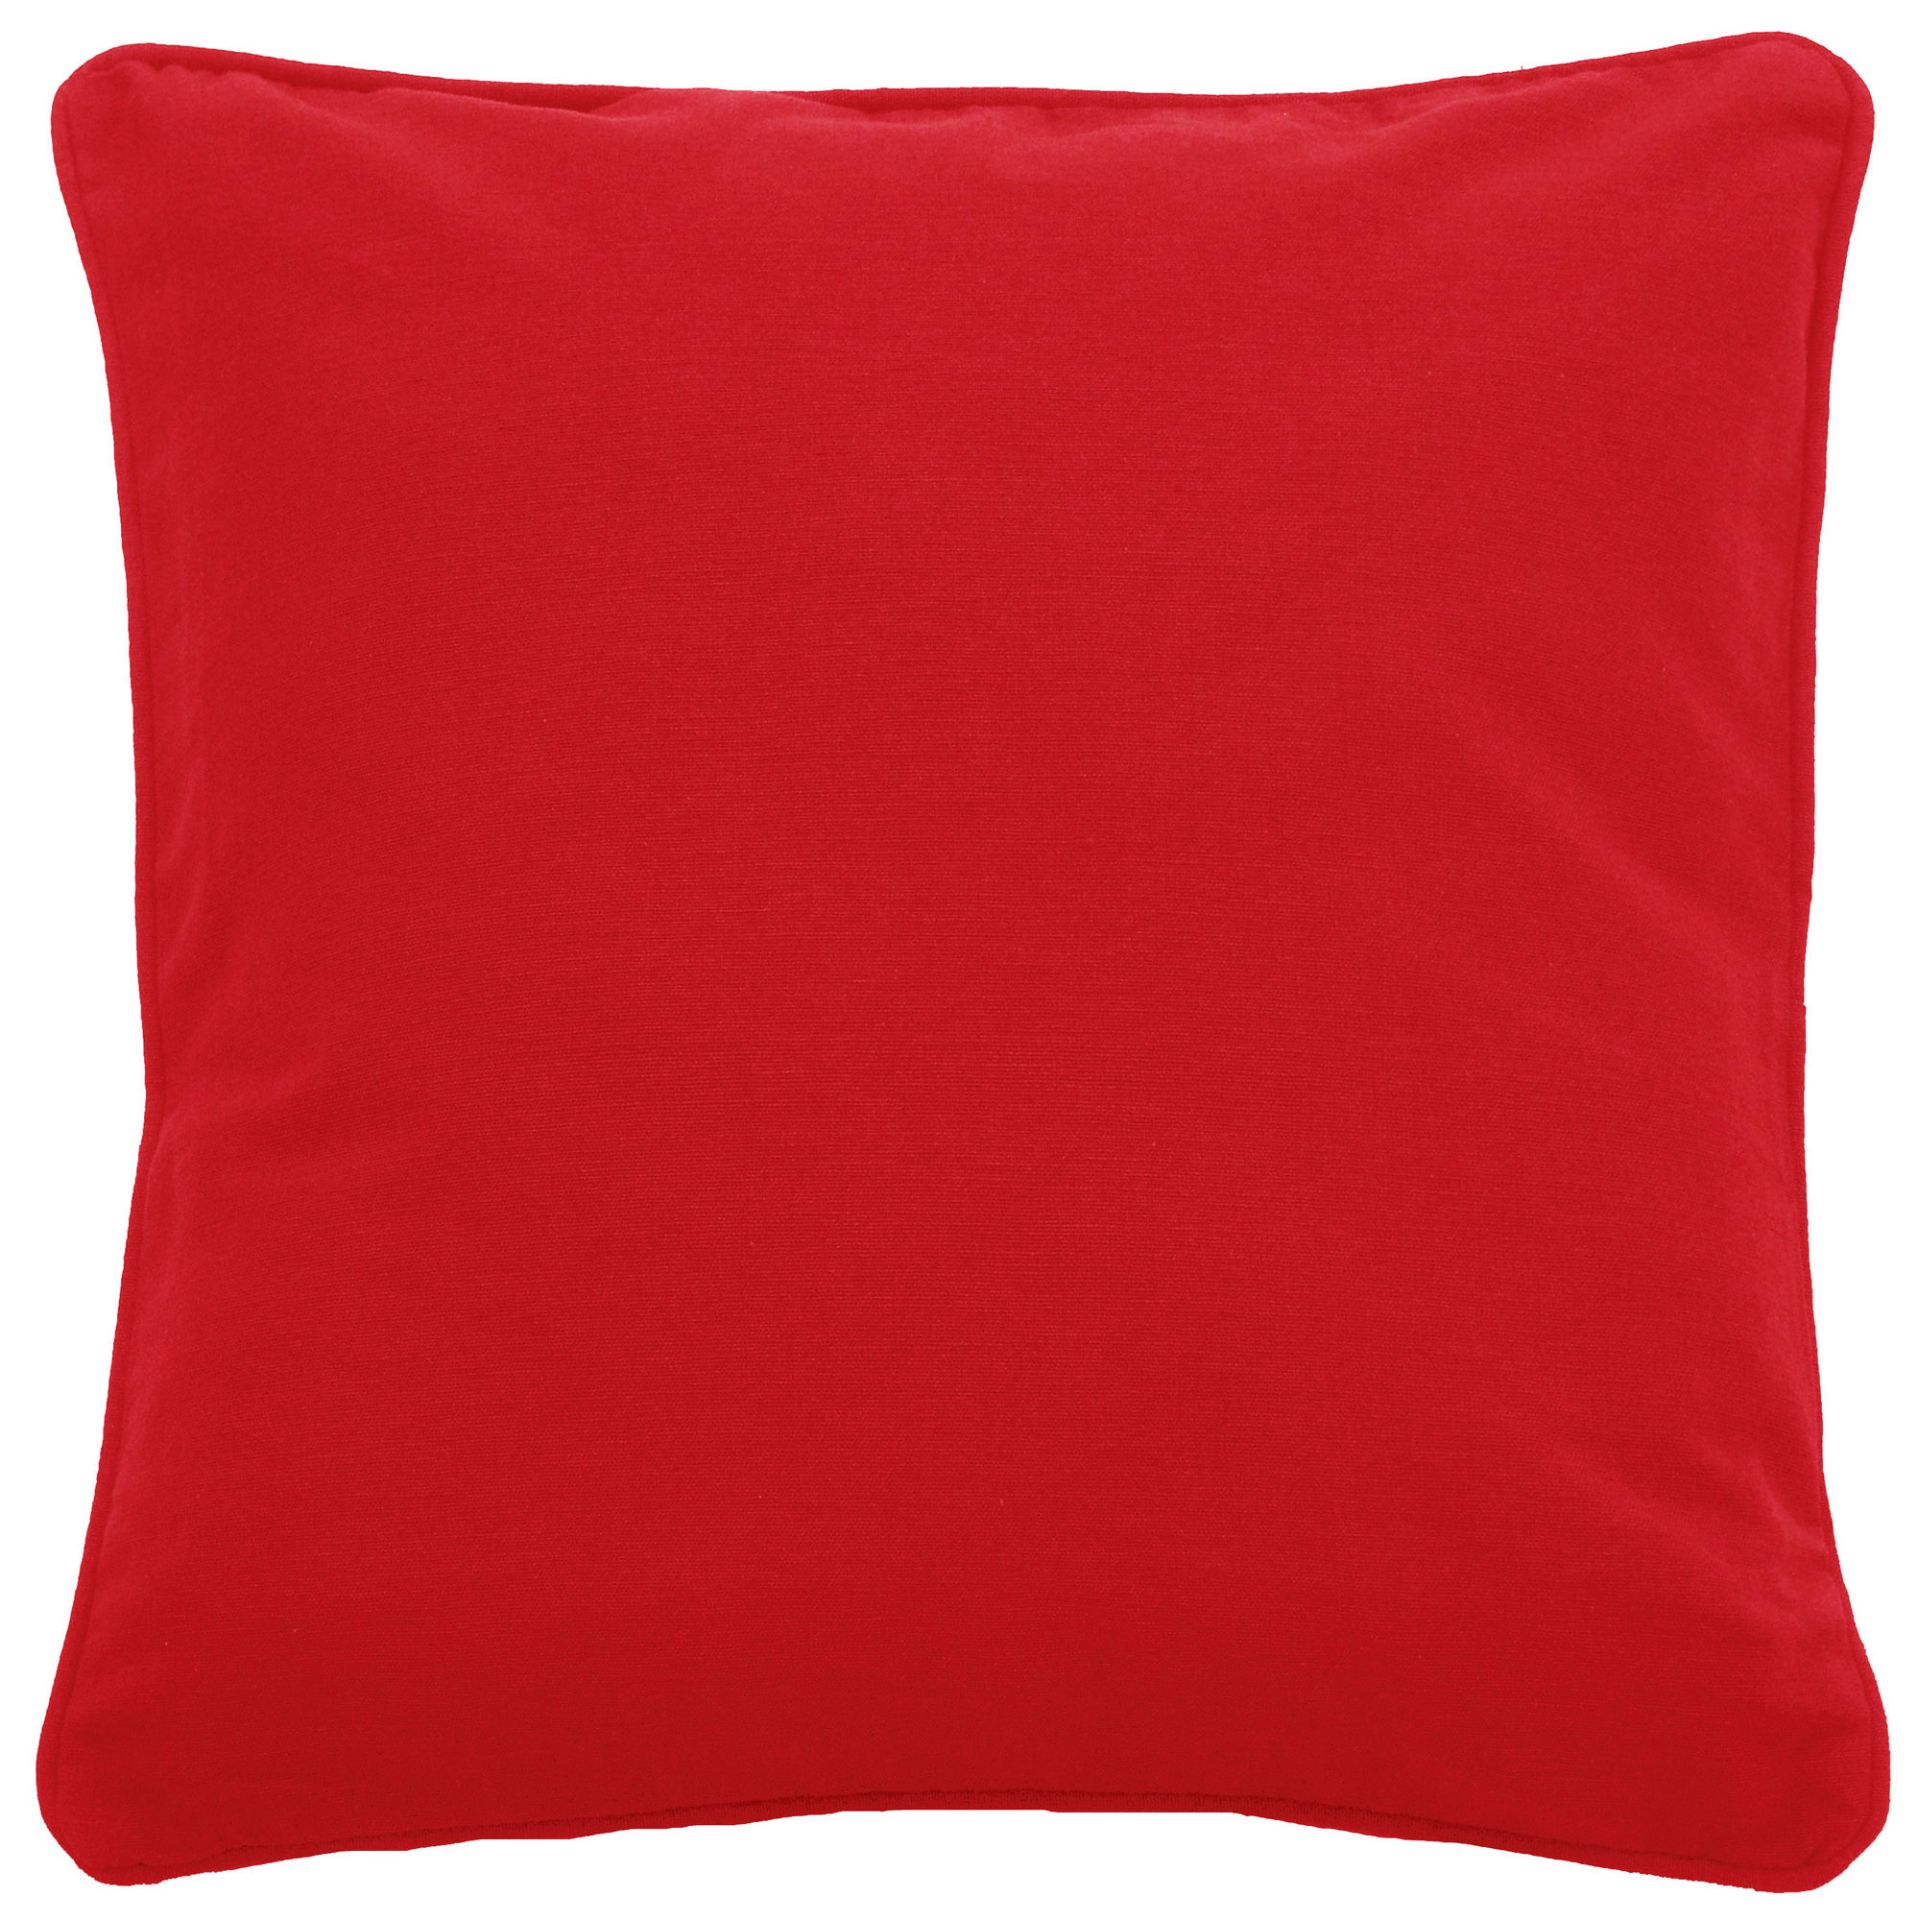 P081 - RED CUSHION COVER R10 each to hire QUANTITY: 19